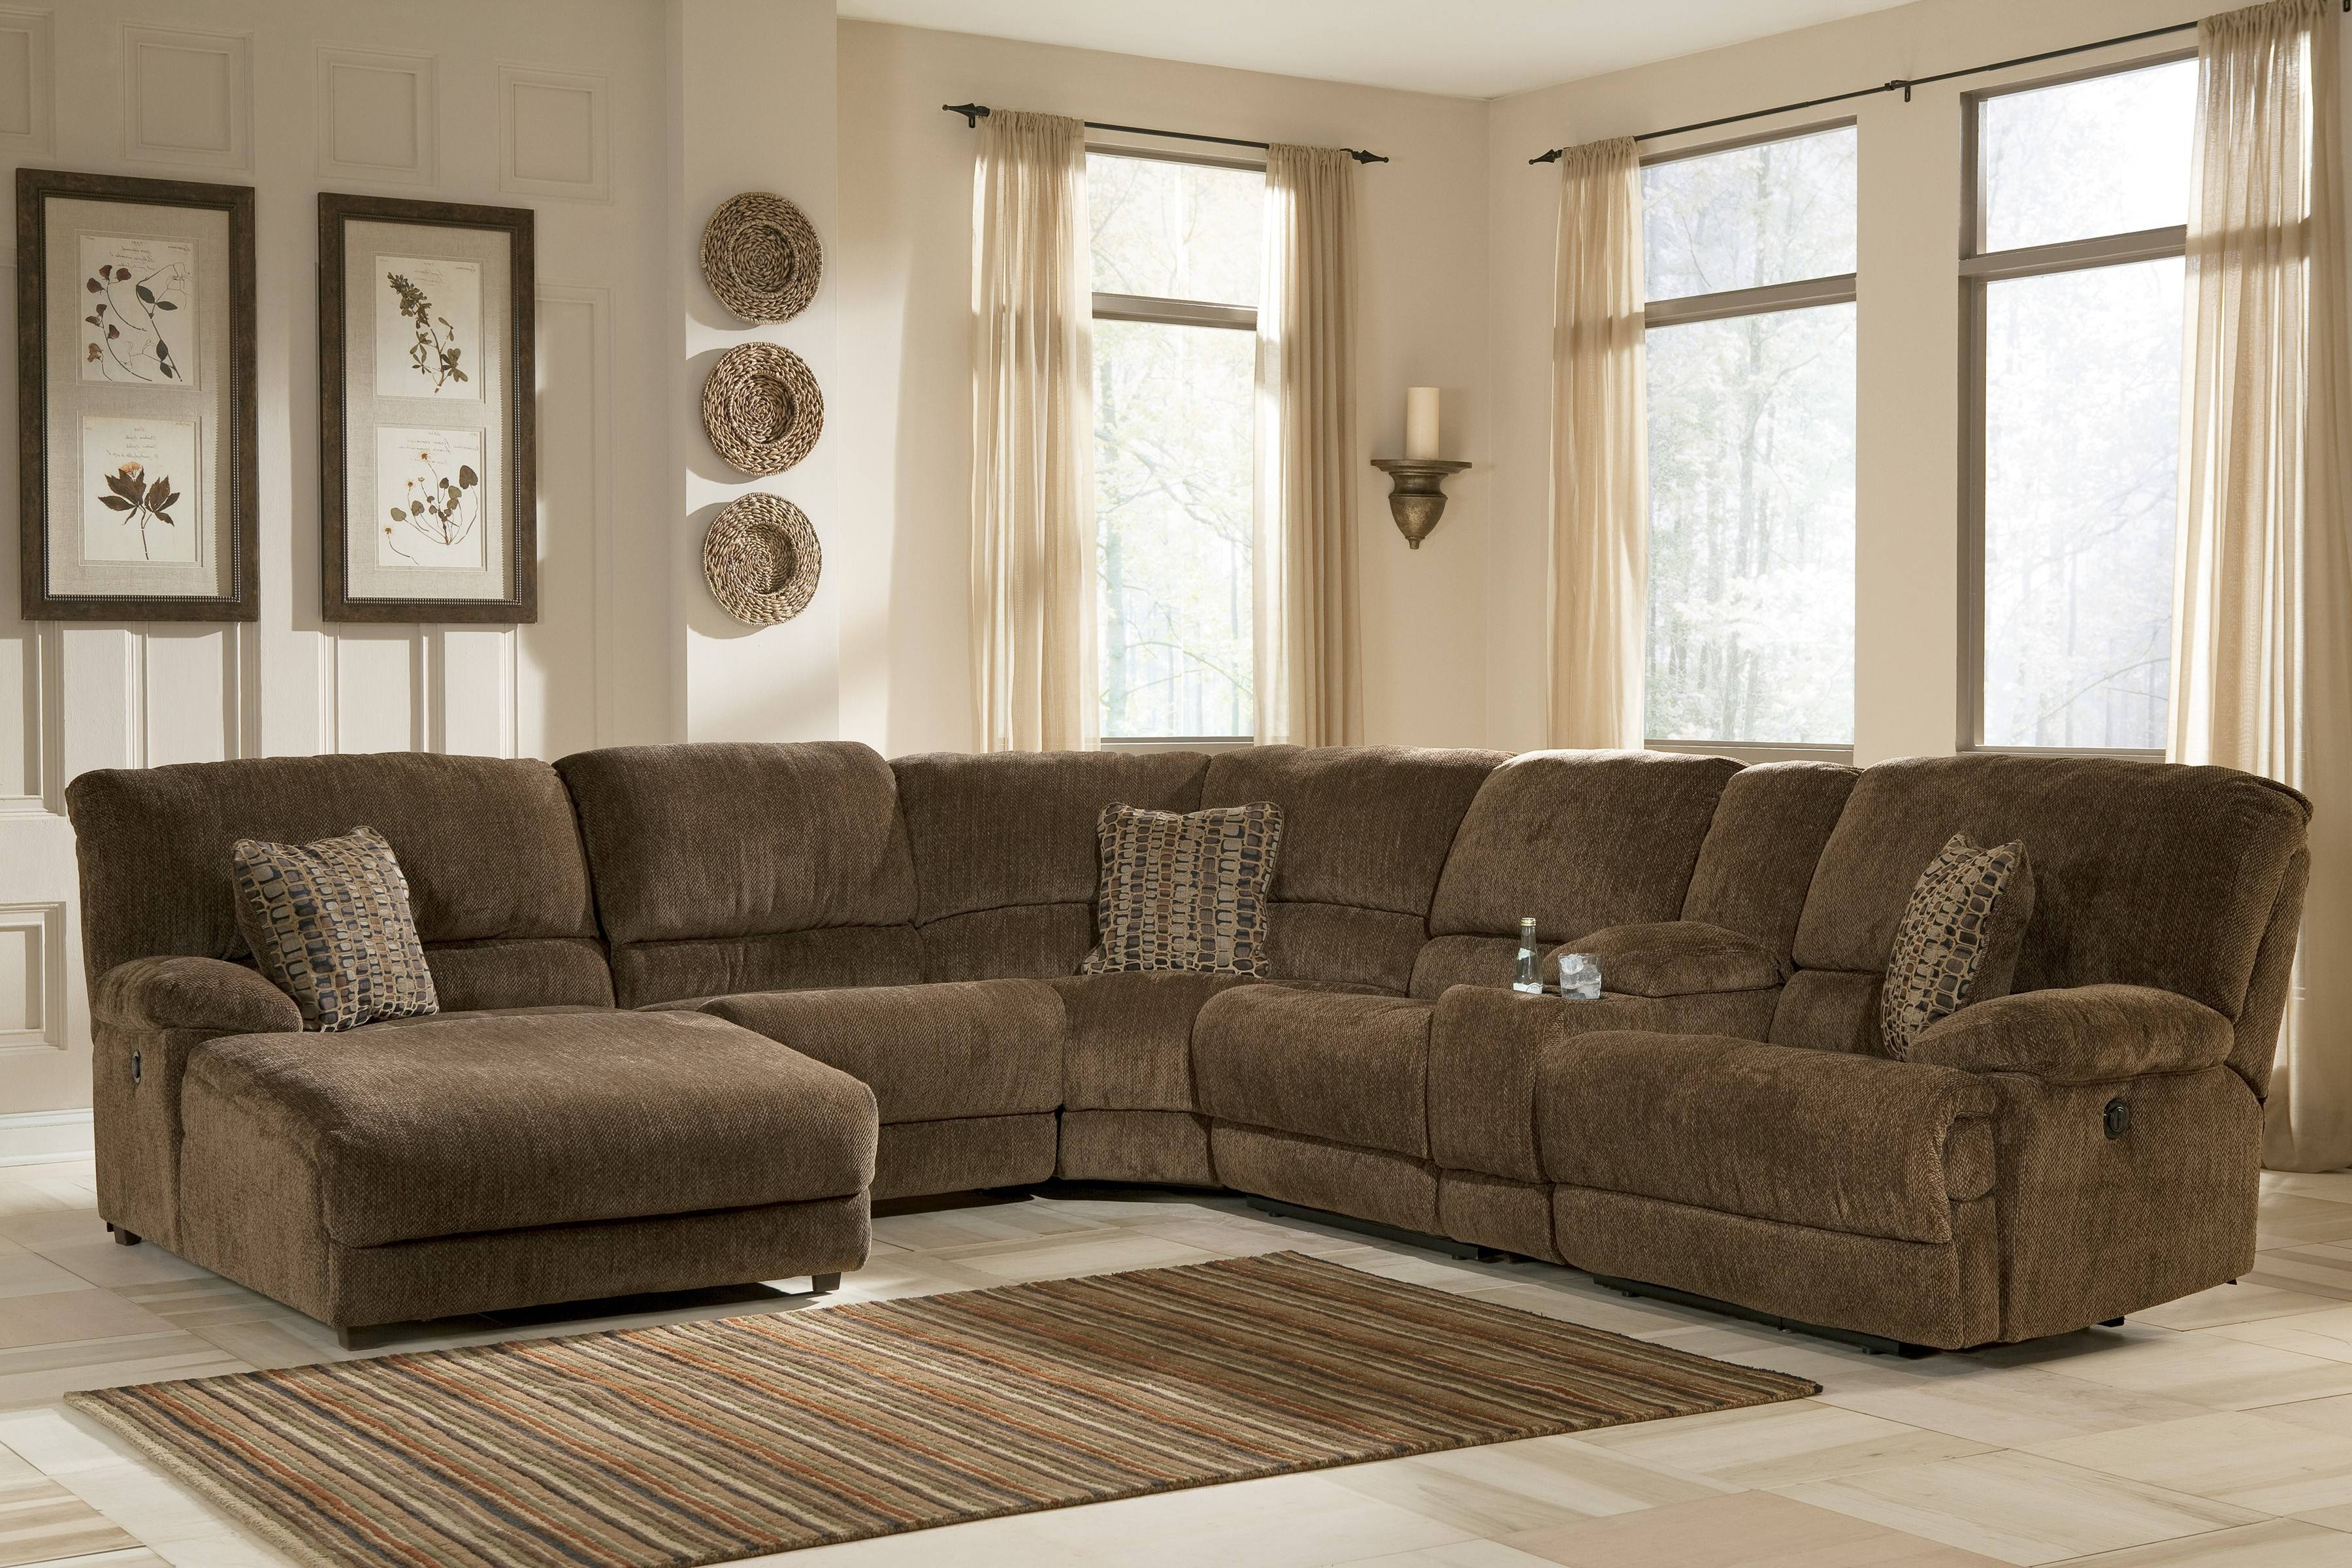 Sofas Center : Sectional Sofas With Recliners Ande Breathtaking with Sectional Sofa Recliners (Image 29 of 30)